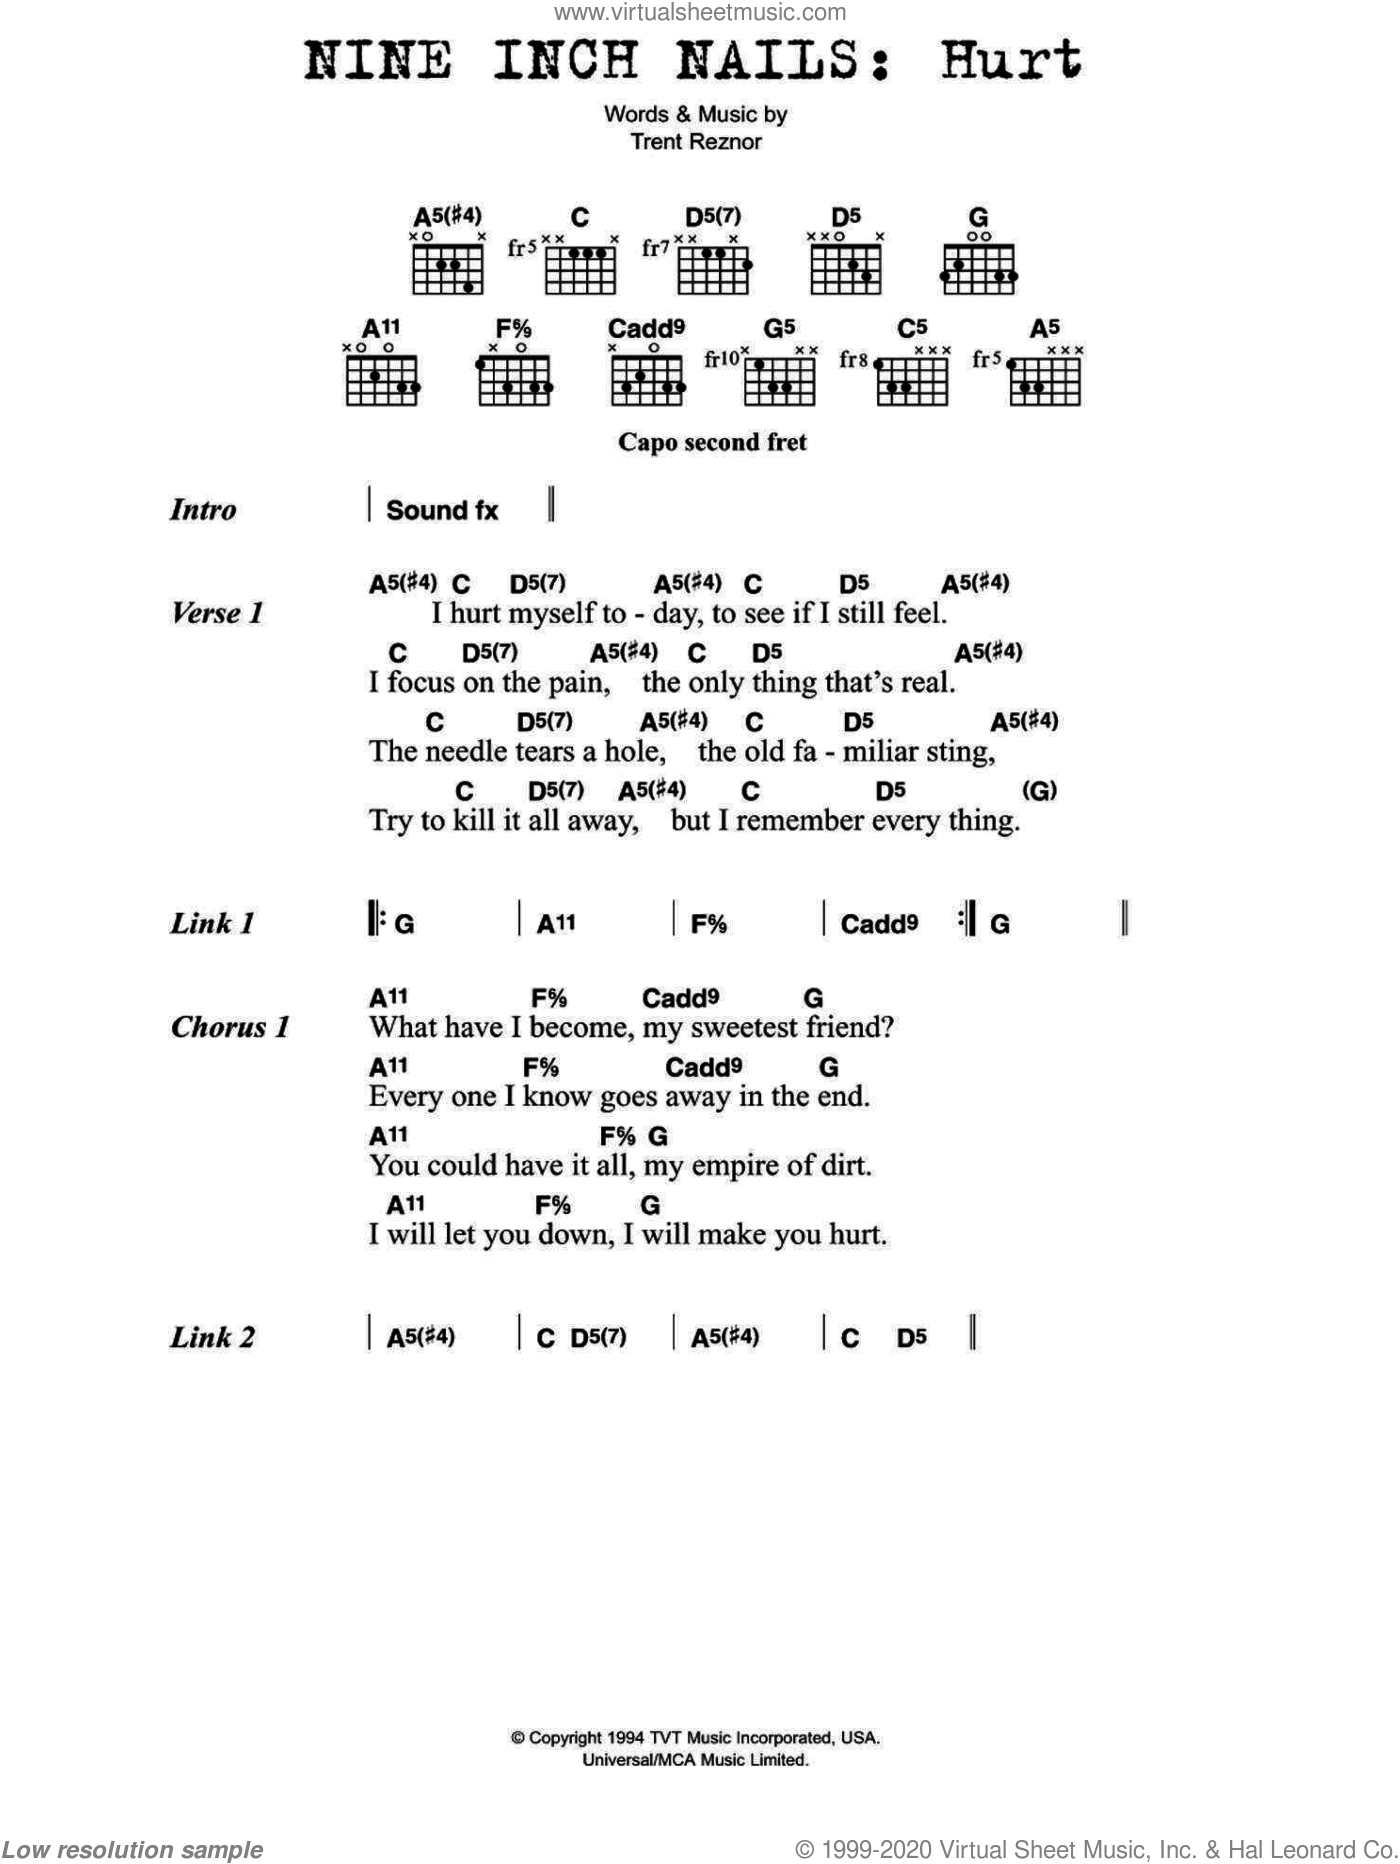 Hurt sheet music for guitar (chords, lyrics, melody) by Trent Reznor